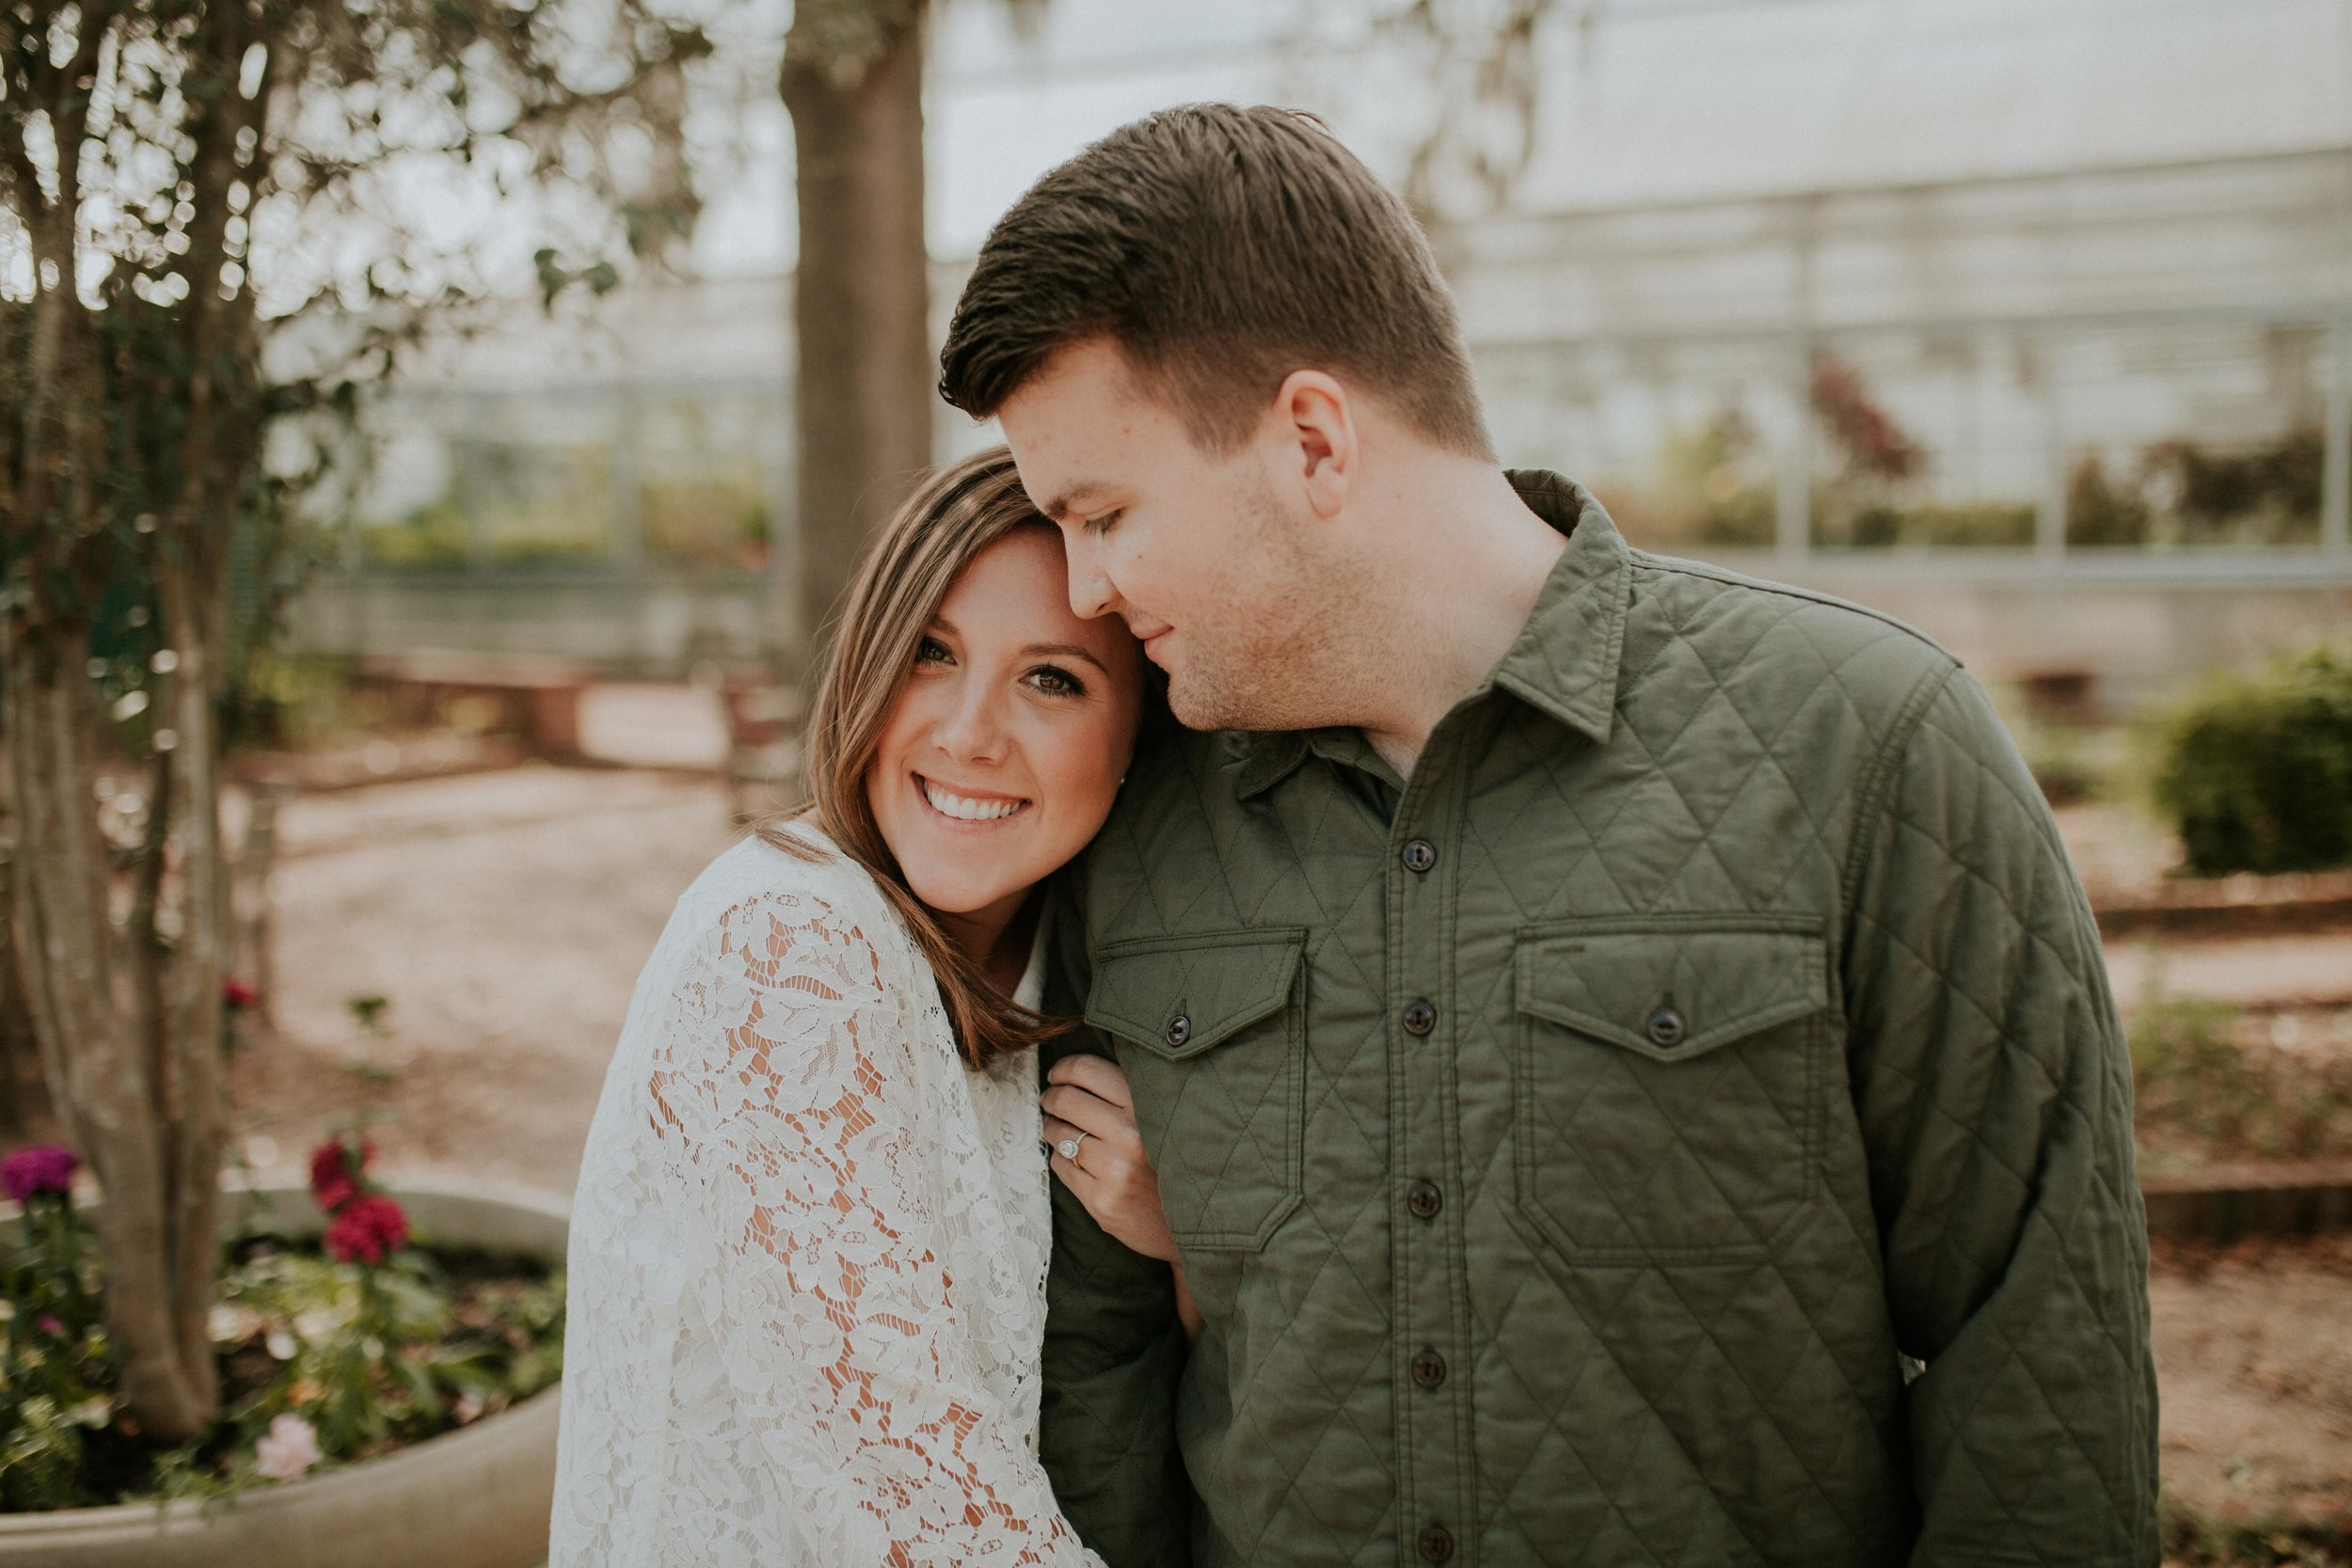 Memorial Park Engagement Session Houston Texas - Madeleine Frost-1115.jpg